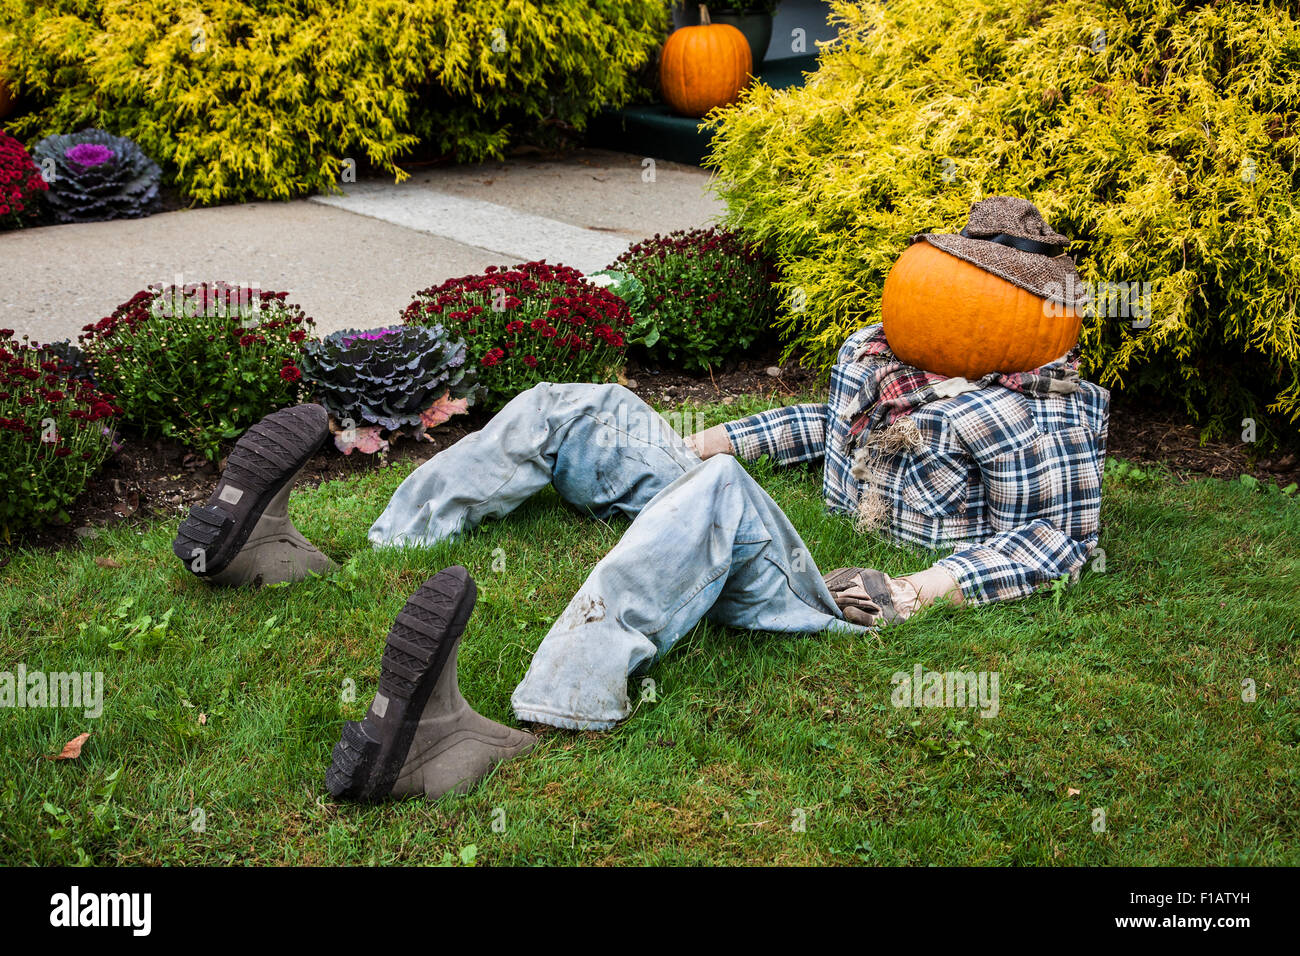 Halloween decoration of a pumpkin head man sitting in the grass in ...